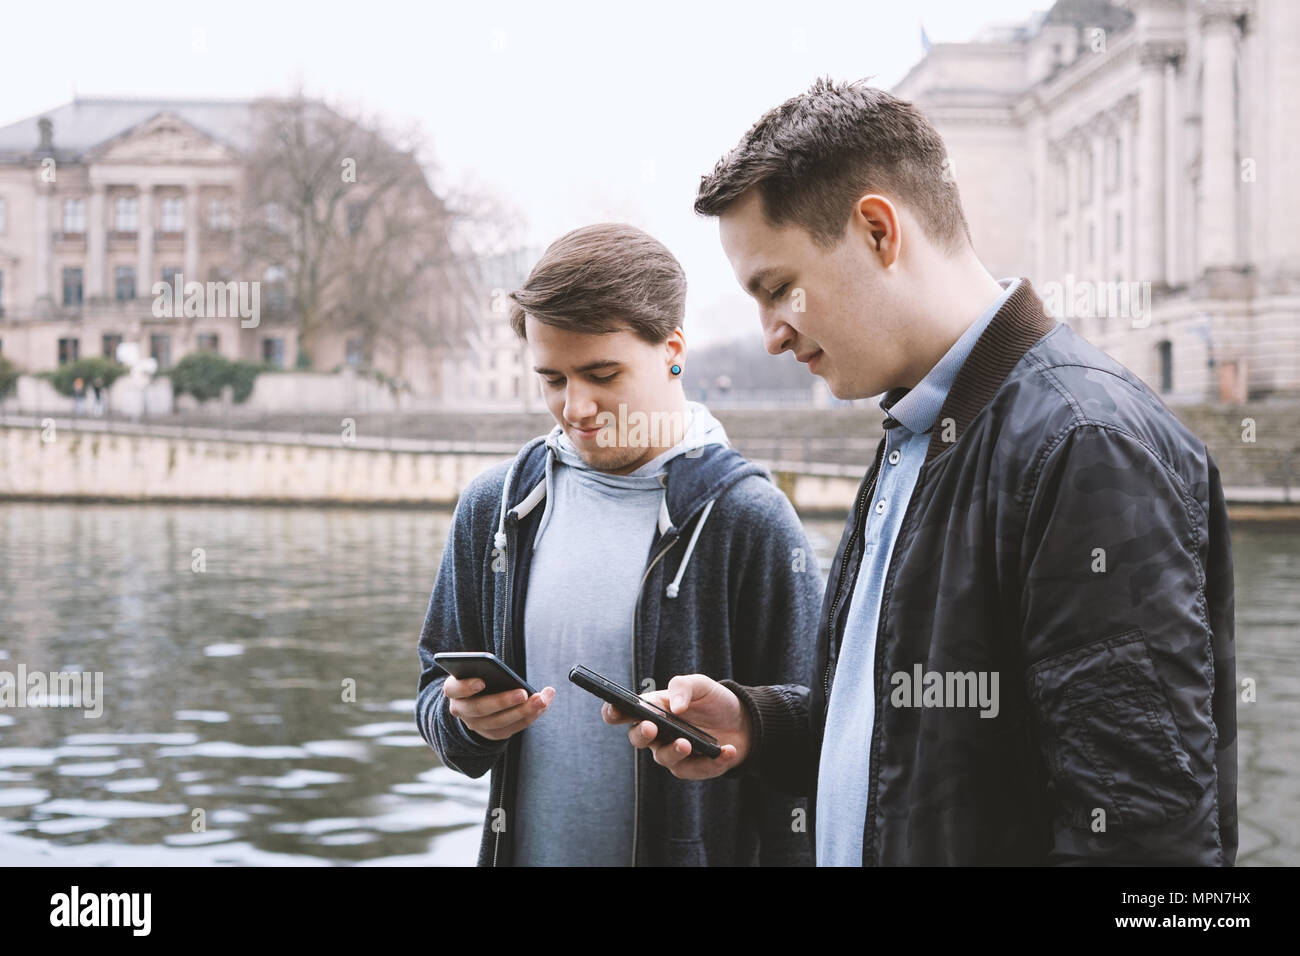 two antisocial mobile phone addicted male teenagers standing together using smartphone, technology concept, urban riverside location in Berlin Germany - Stock Image